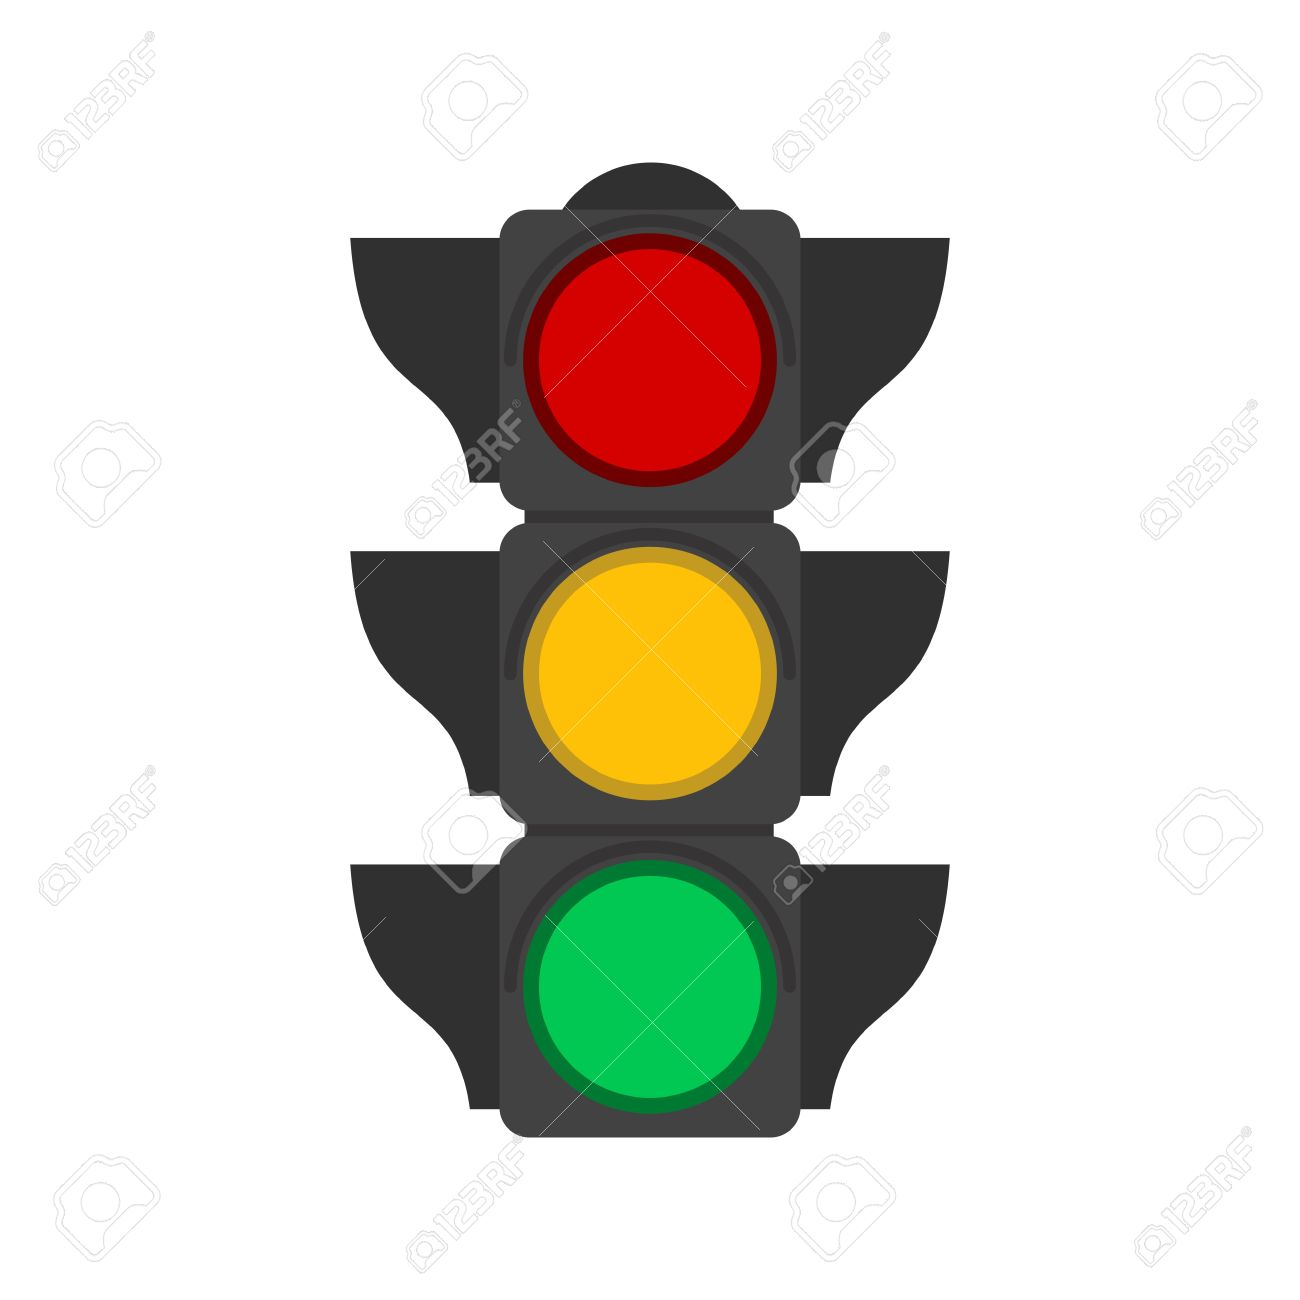 Traffic light signal clipart - Clipground for Traffic Light Yellow Icon  103wja